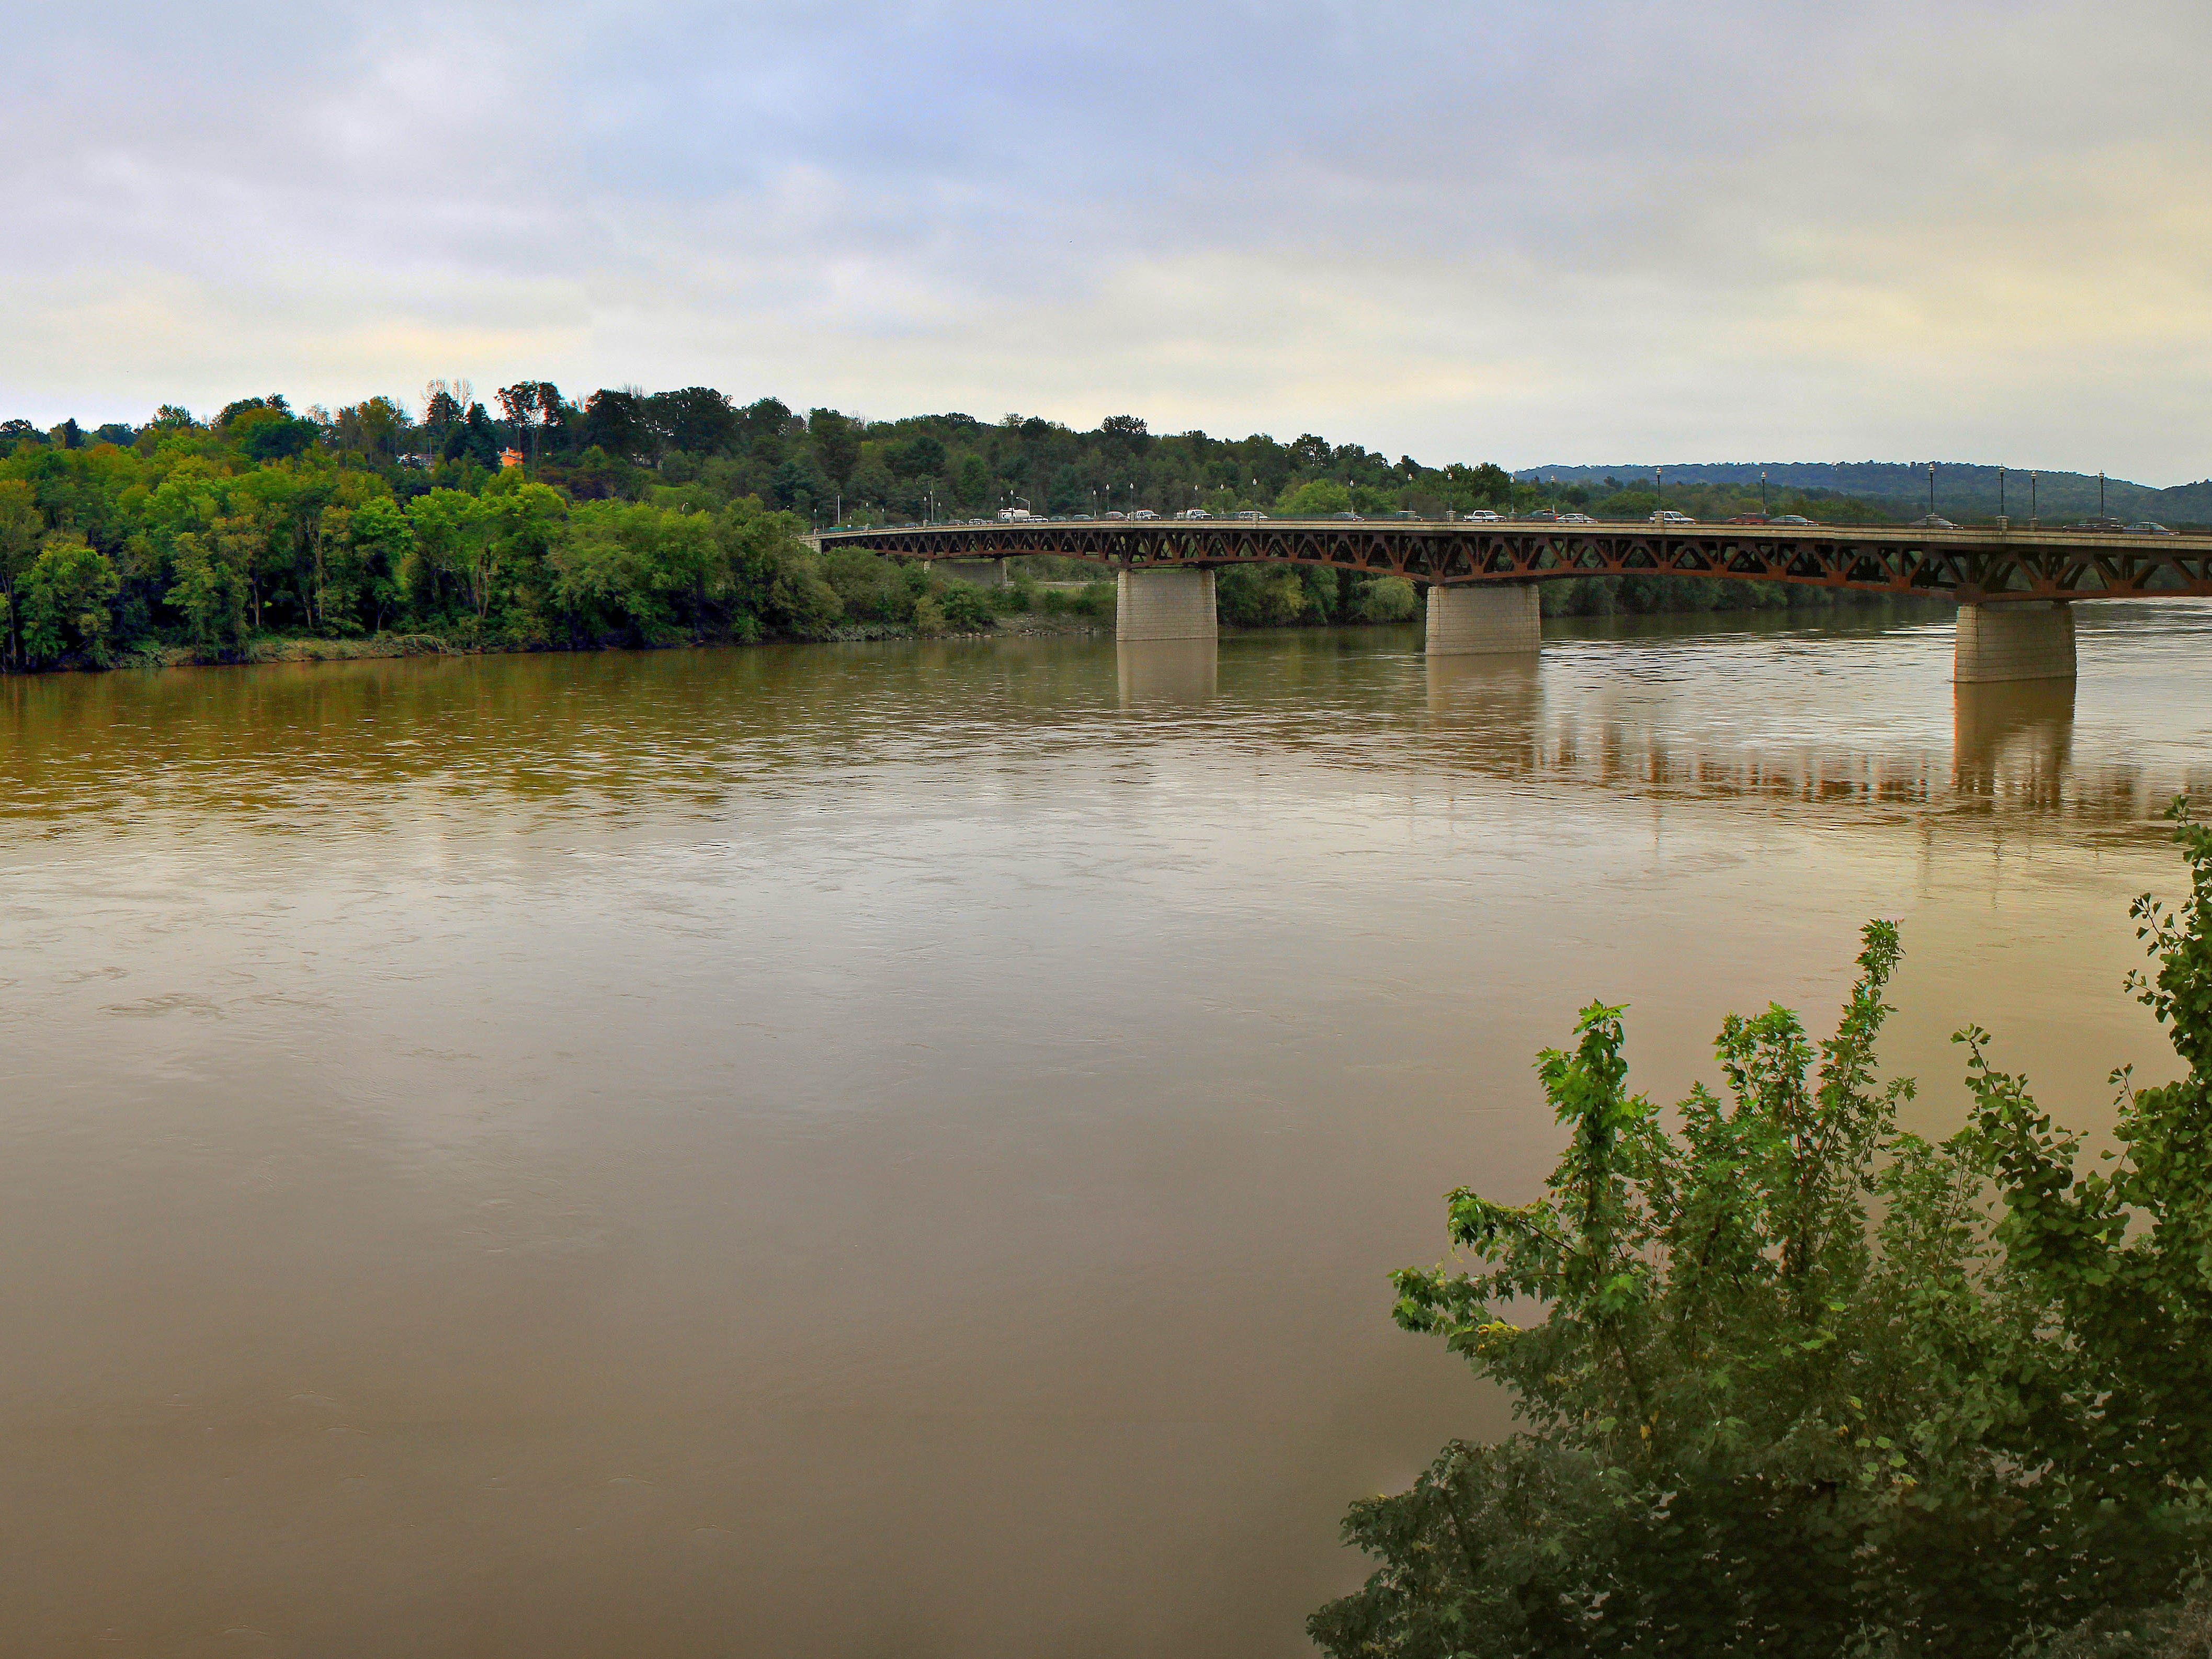 The view of the Susquehanna River from the Owego Gateway Building in Sept. 2018.